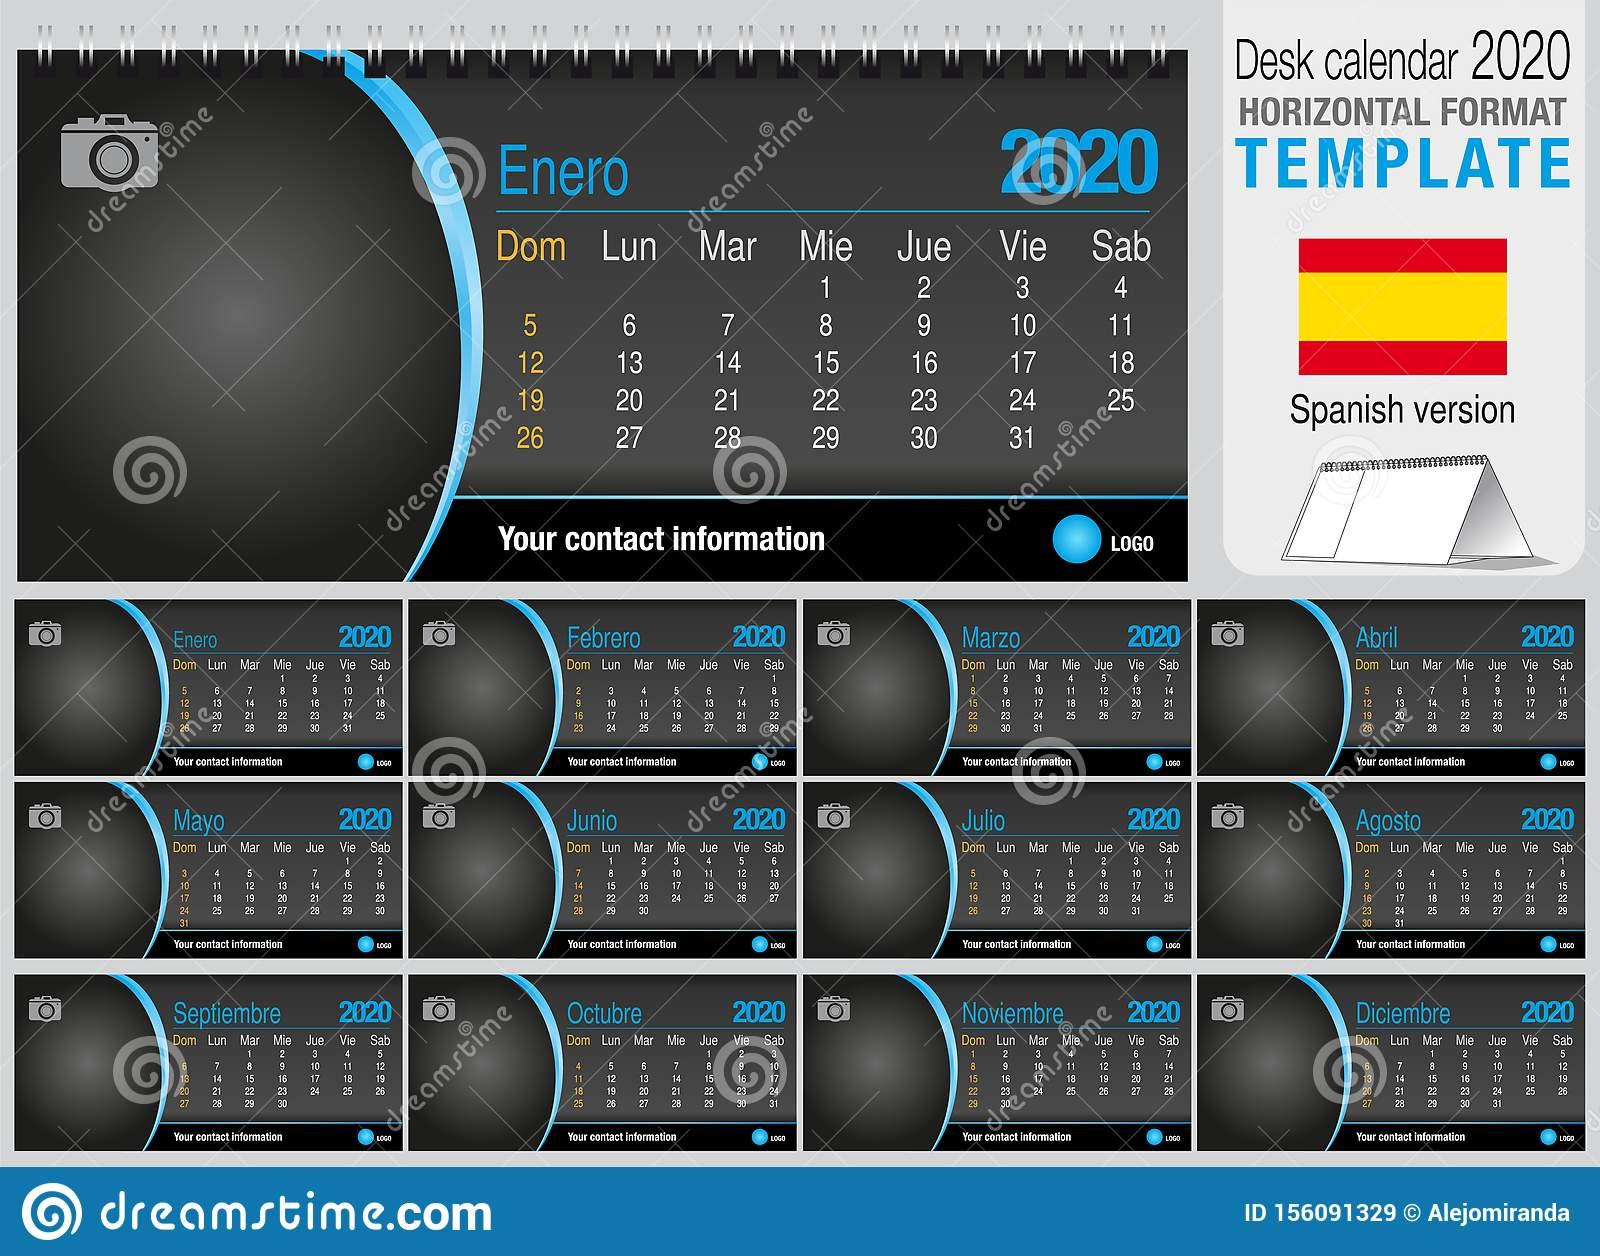 Useful desk triangle calendar 2020 template on black background, with space to place a photo. Size: 22 cm x 10 cm. Format